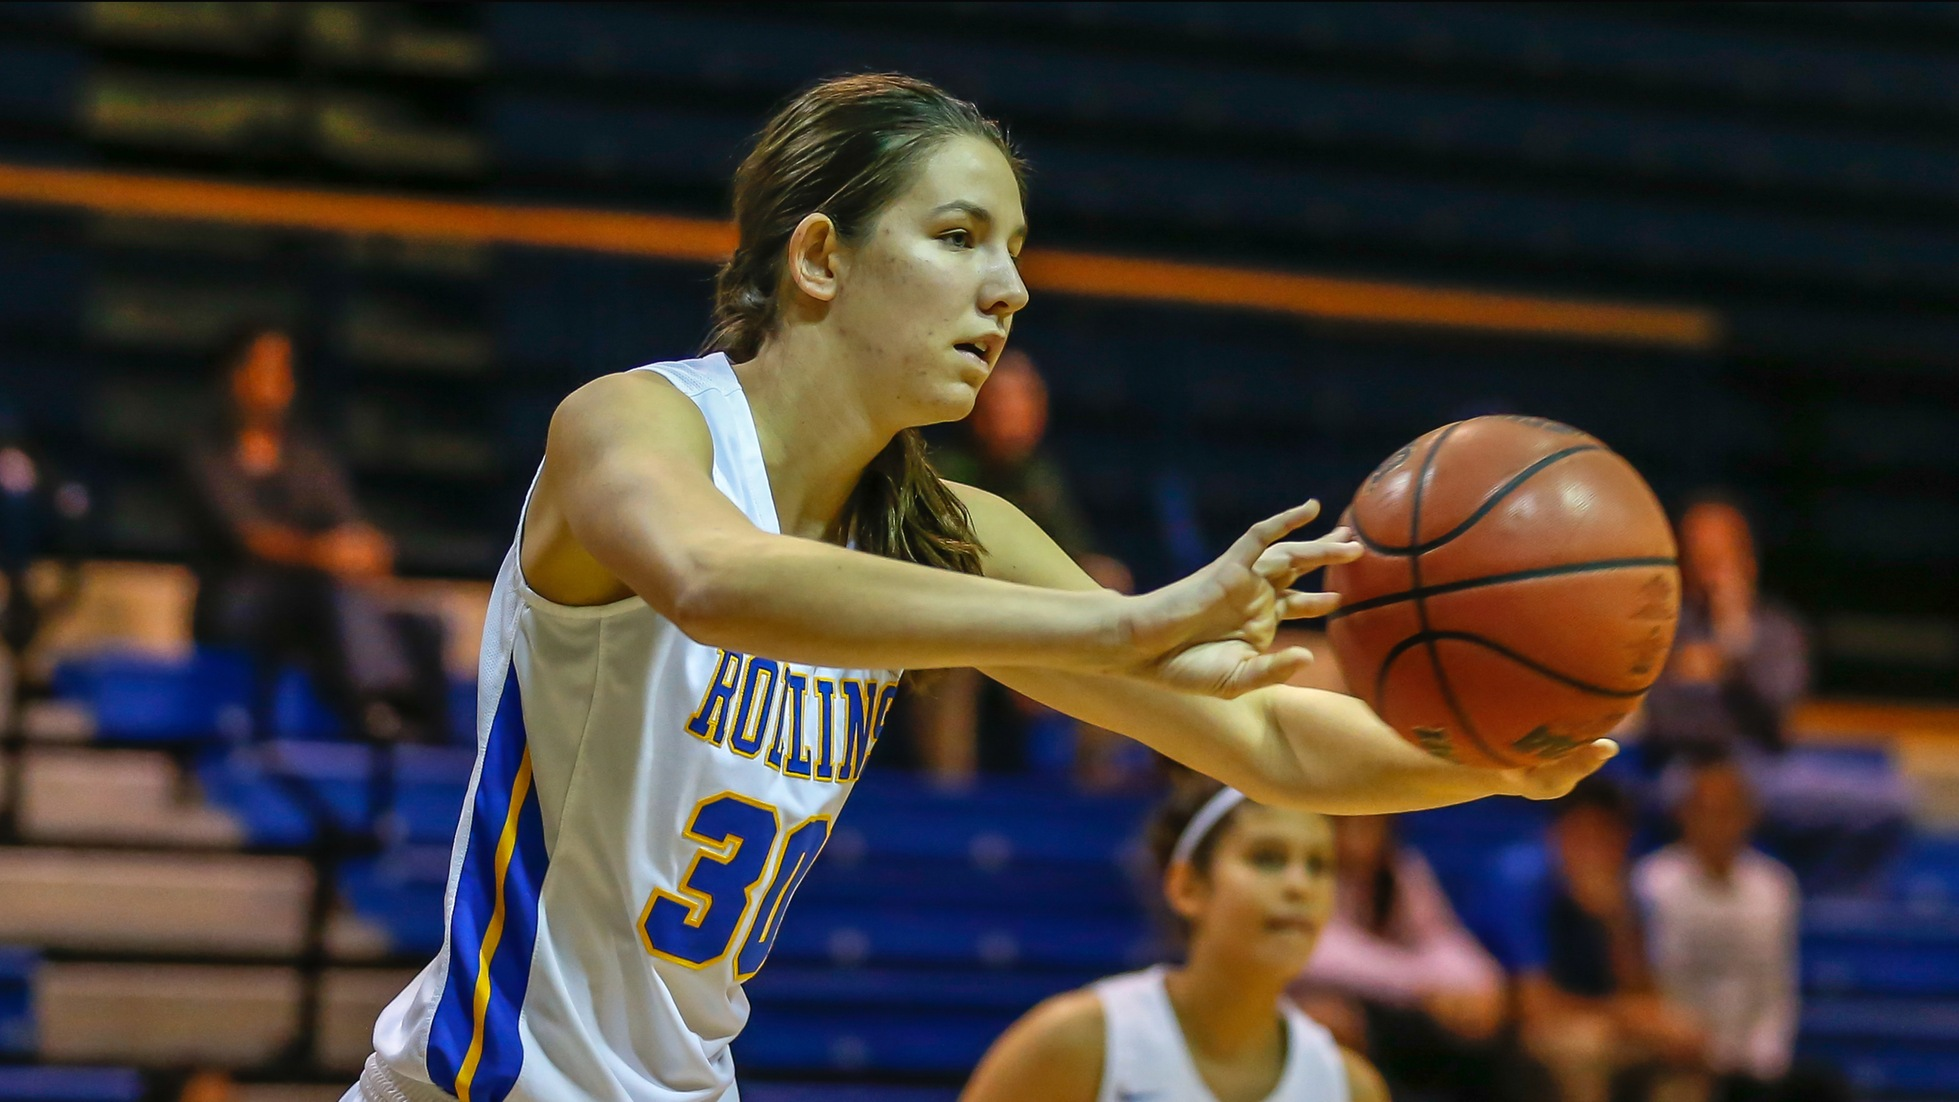 Carly McLendon hung 22 points and 10 rebounds on Lynn Saturday.